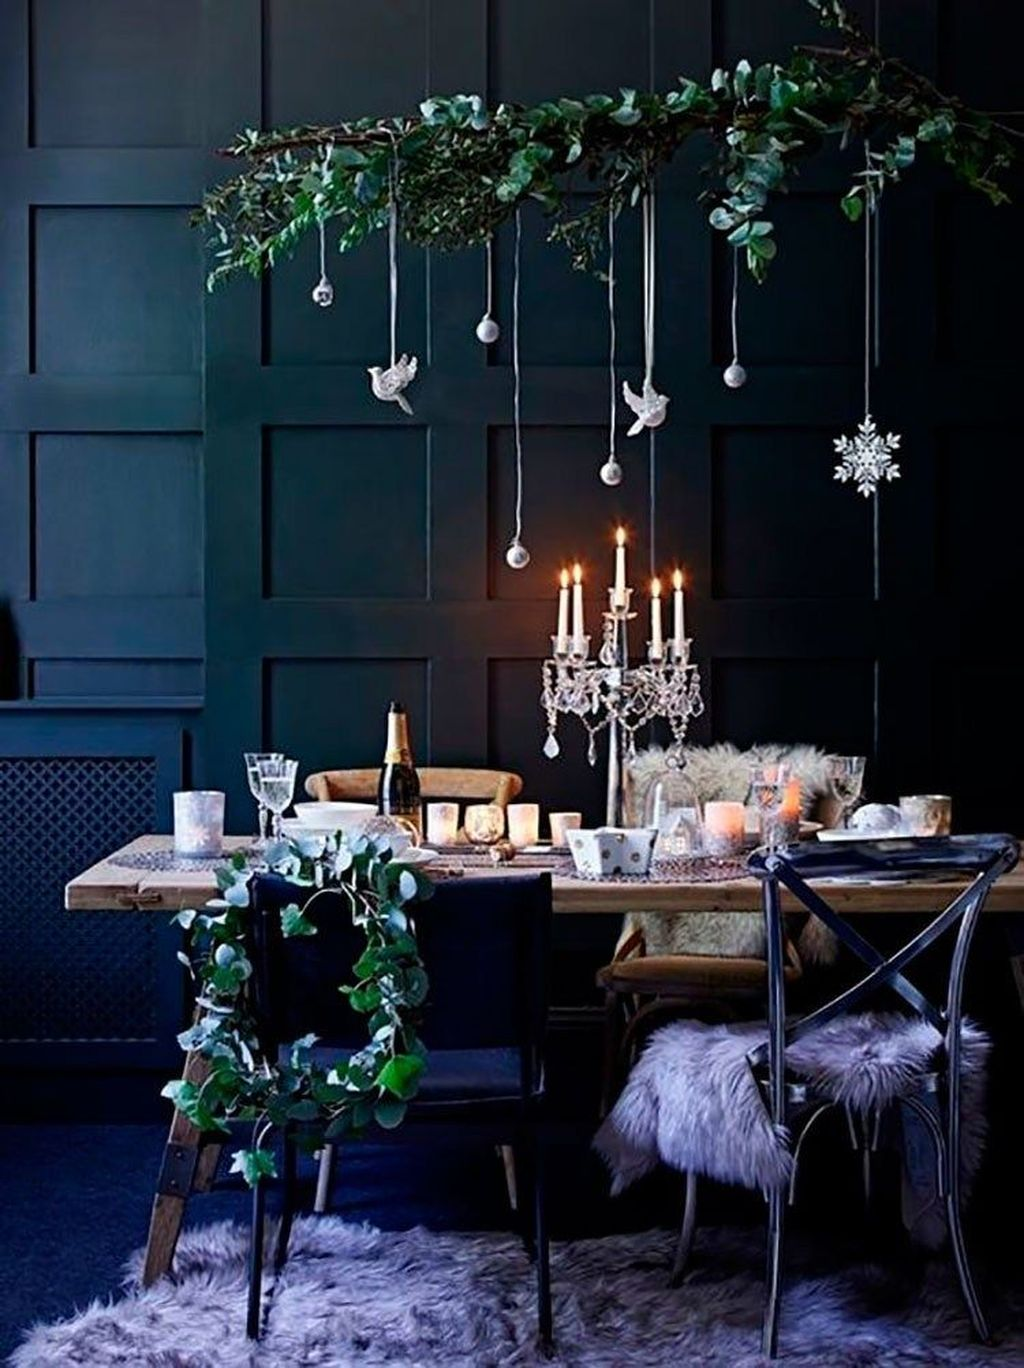 Beautiful Christmas Interior Design Ideas You Never Seen Before 41